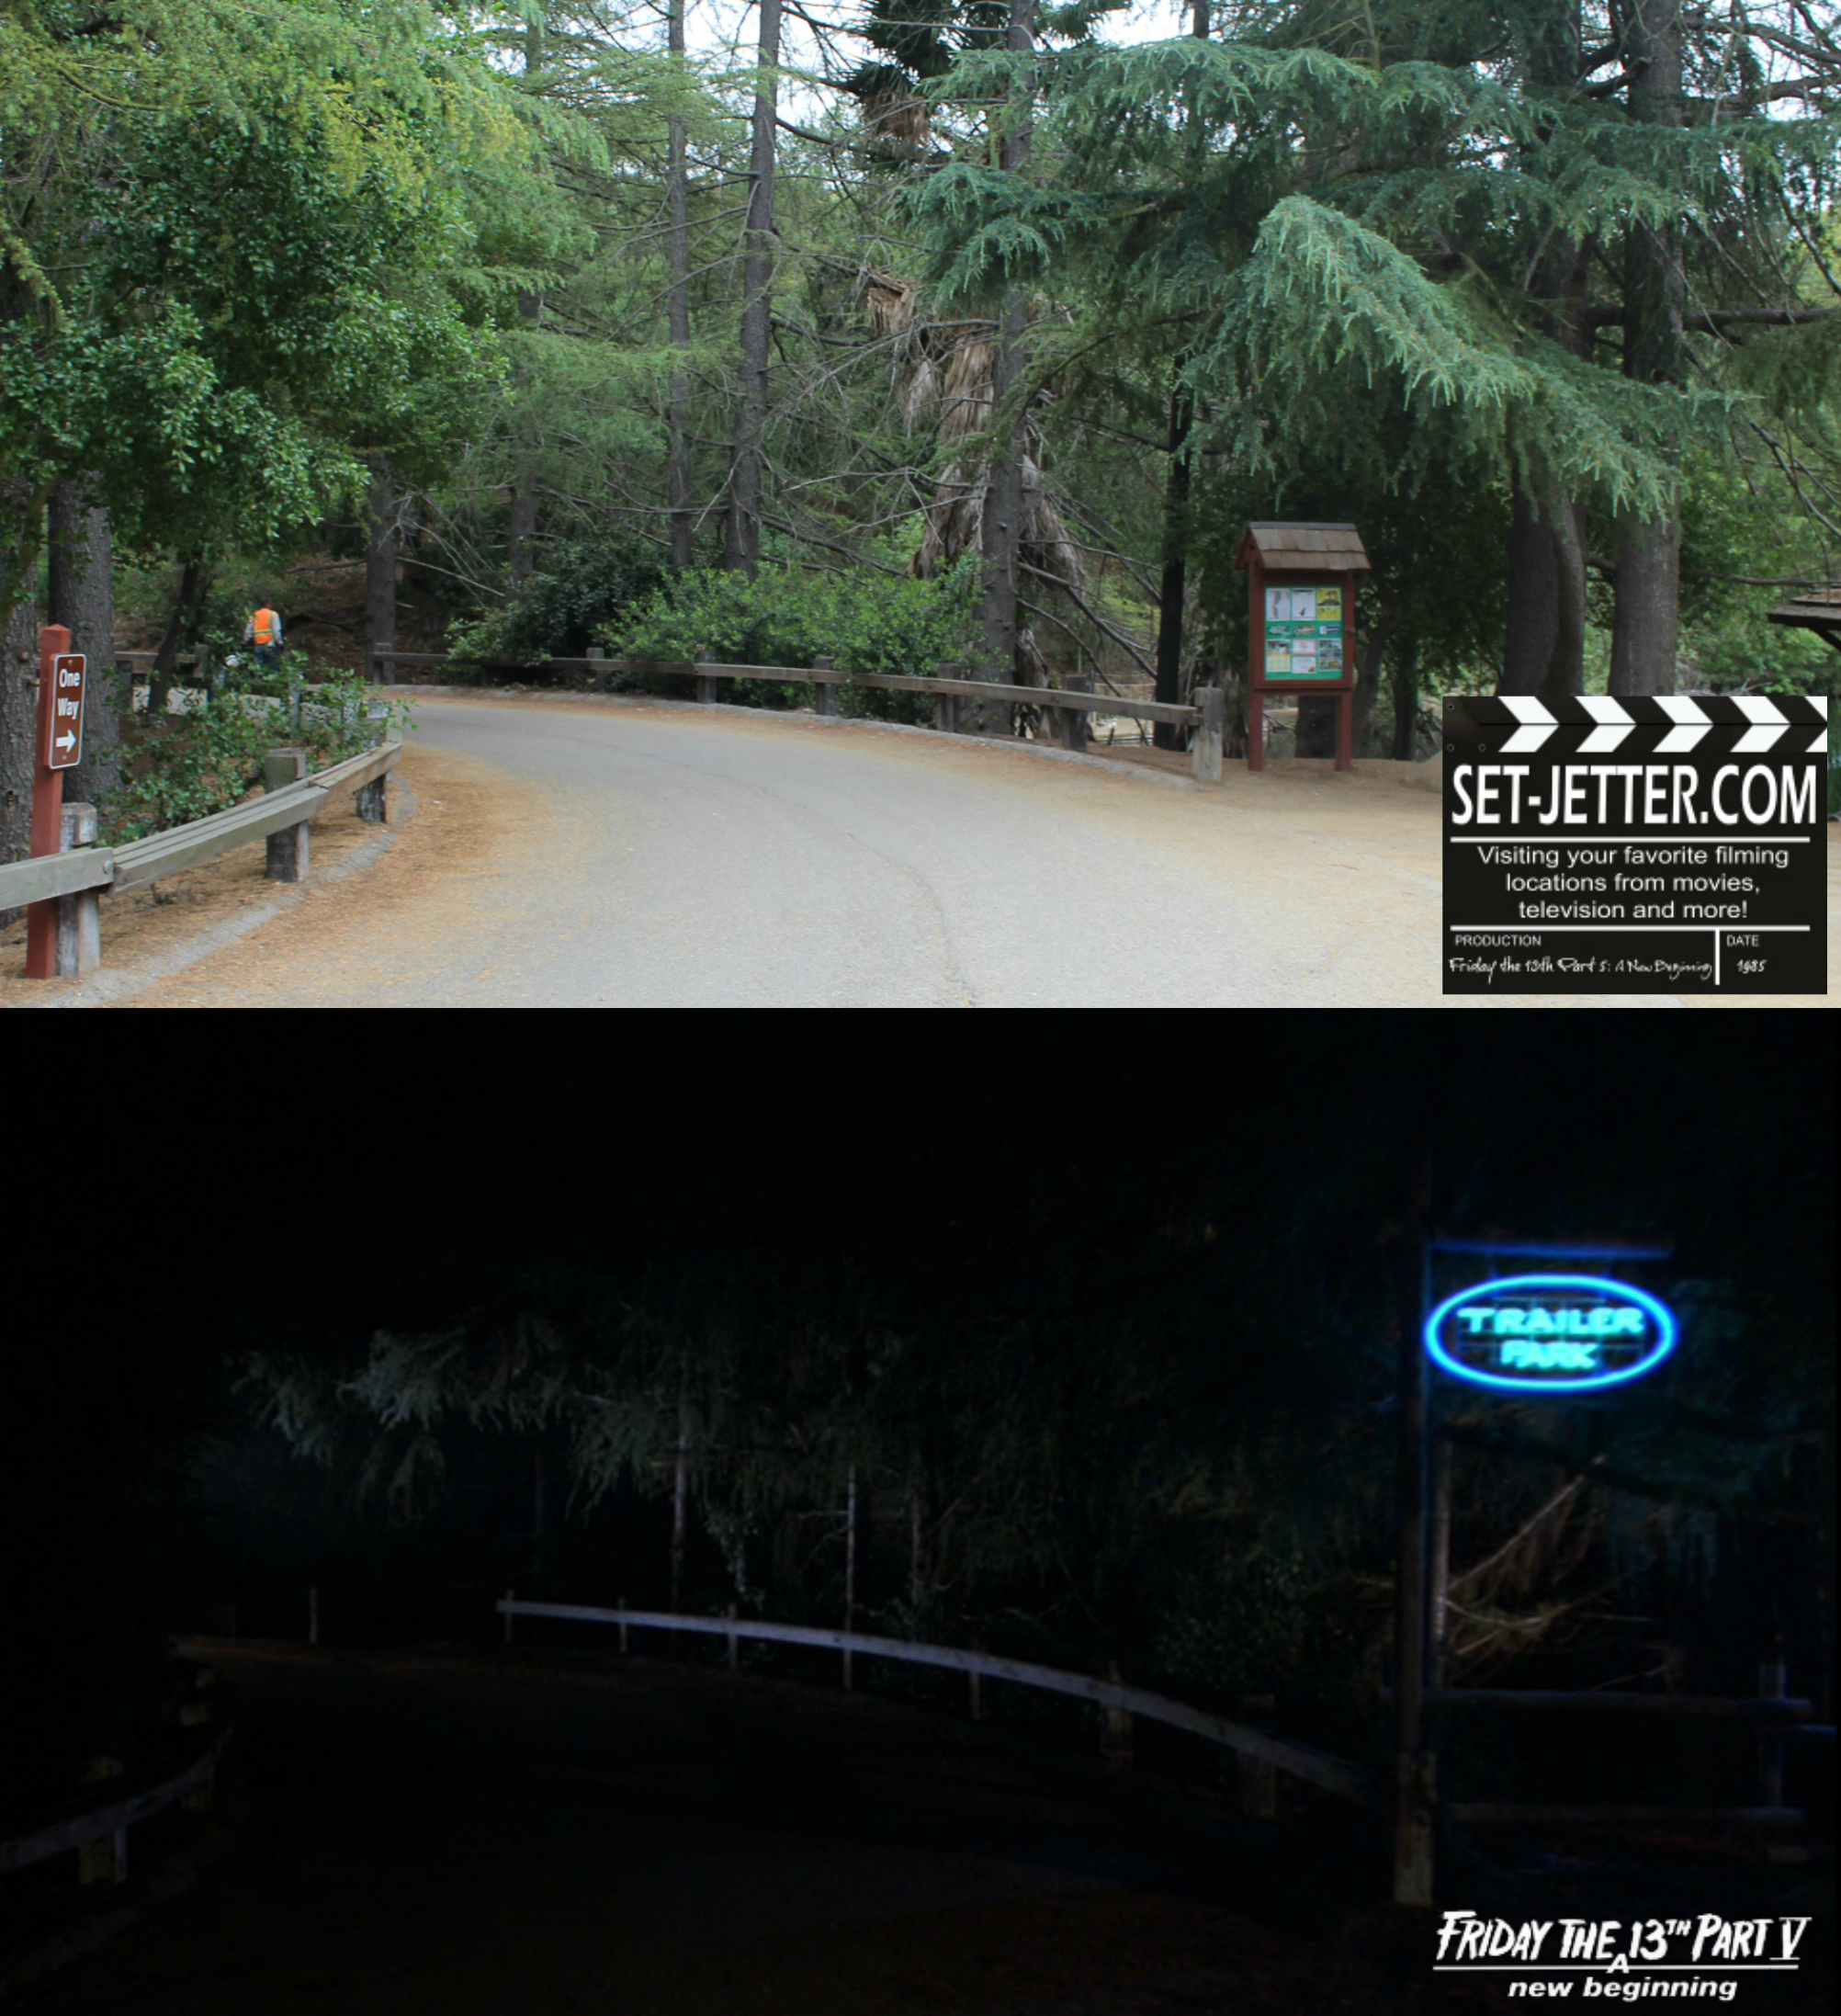 Friday the 13th Part V comparison 30.jpg